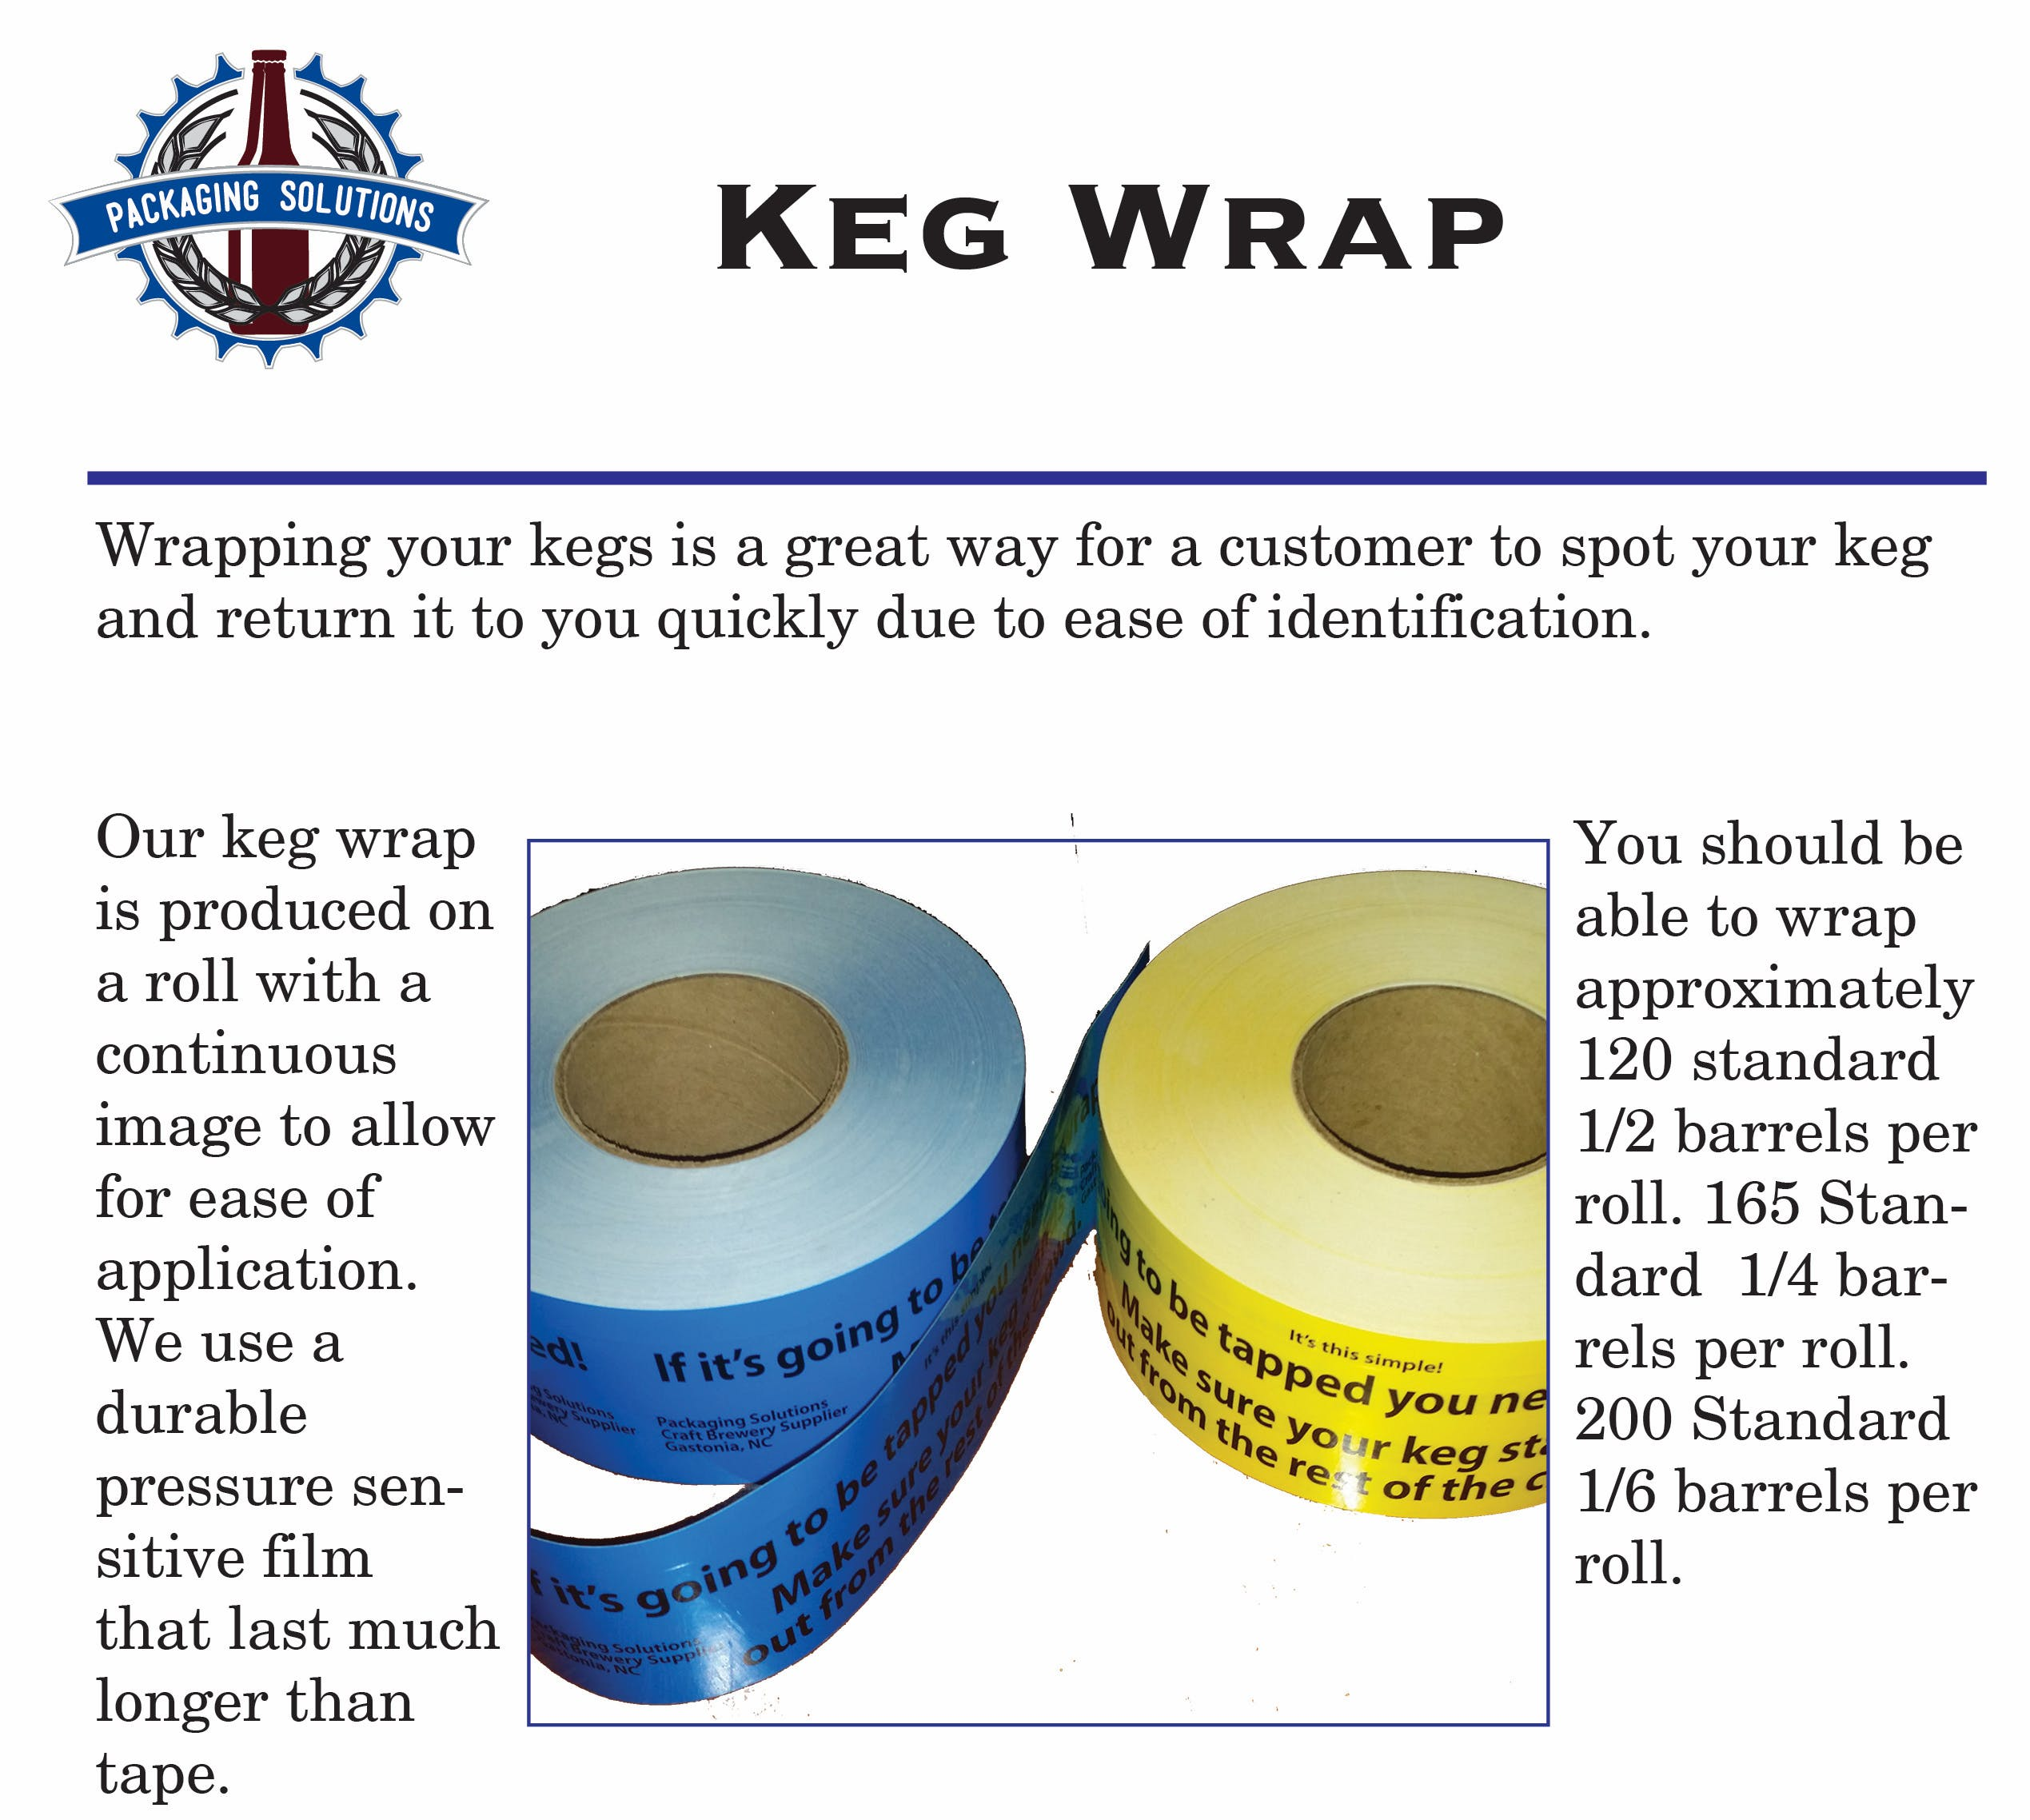 Keg Wraps Keg label sold by Packaging Solutions